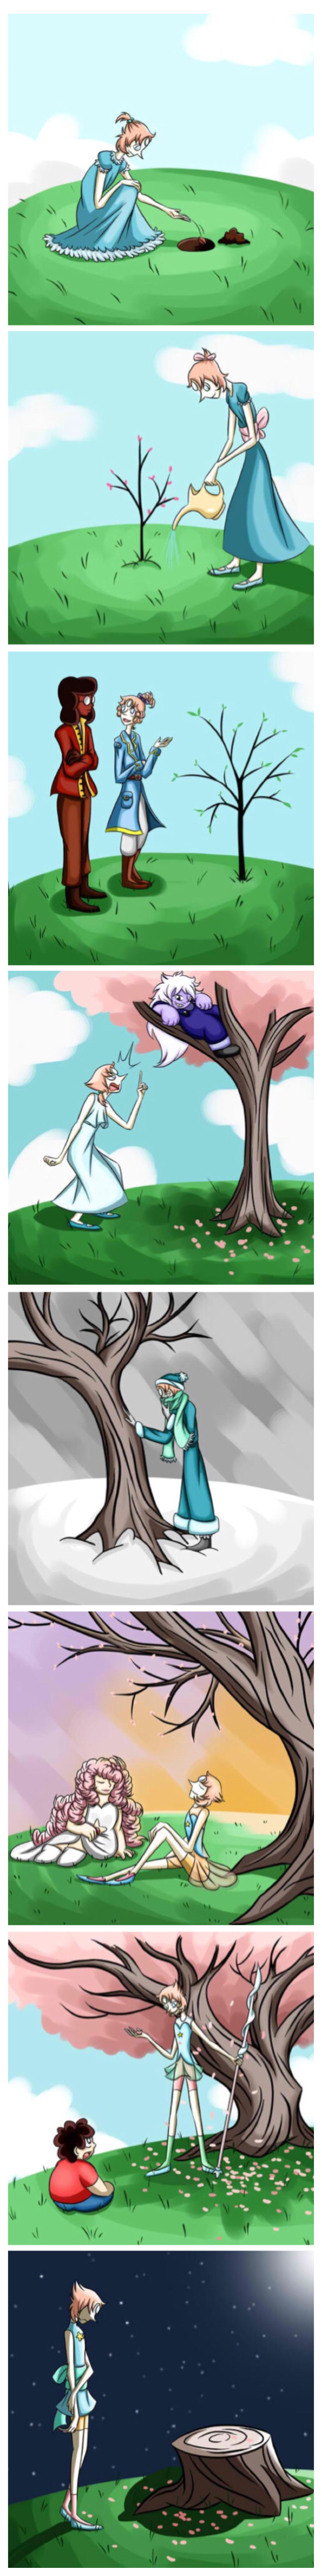 Pearl's tree | I DID NOT NEED TO EXPERIENCE FEELINGS OVER A FREAKING TREE THANKS